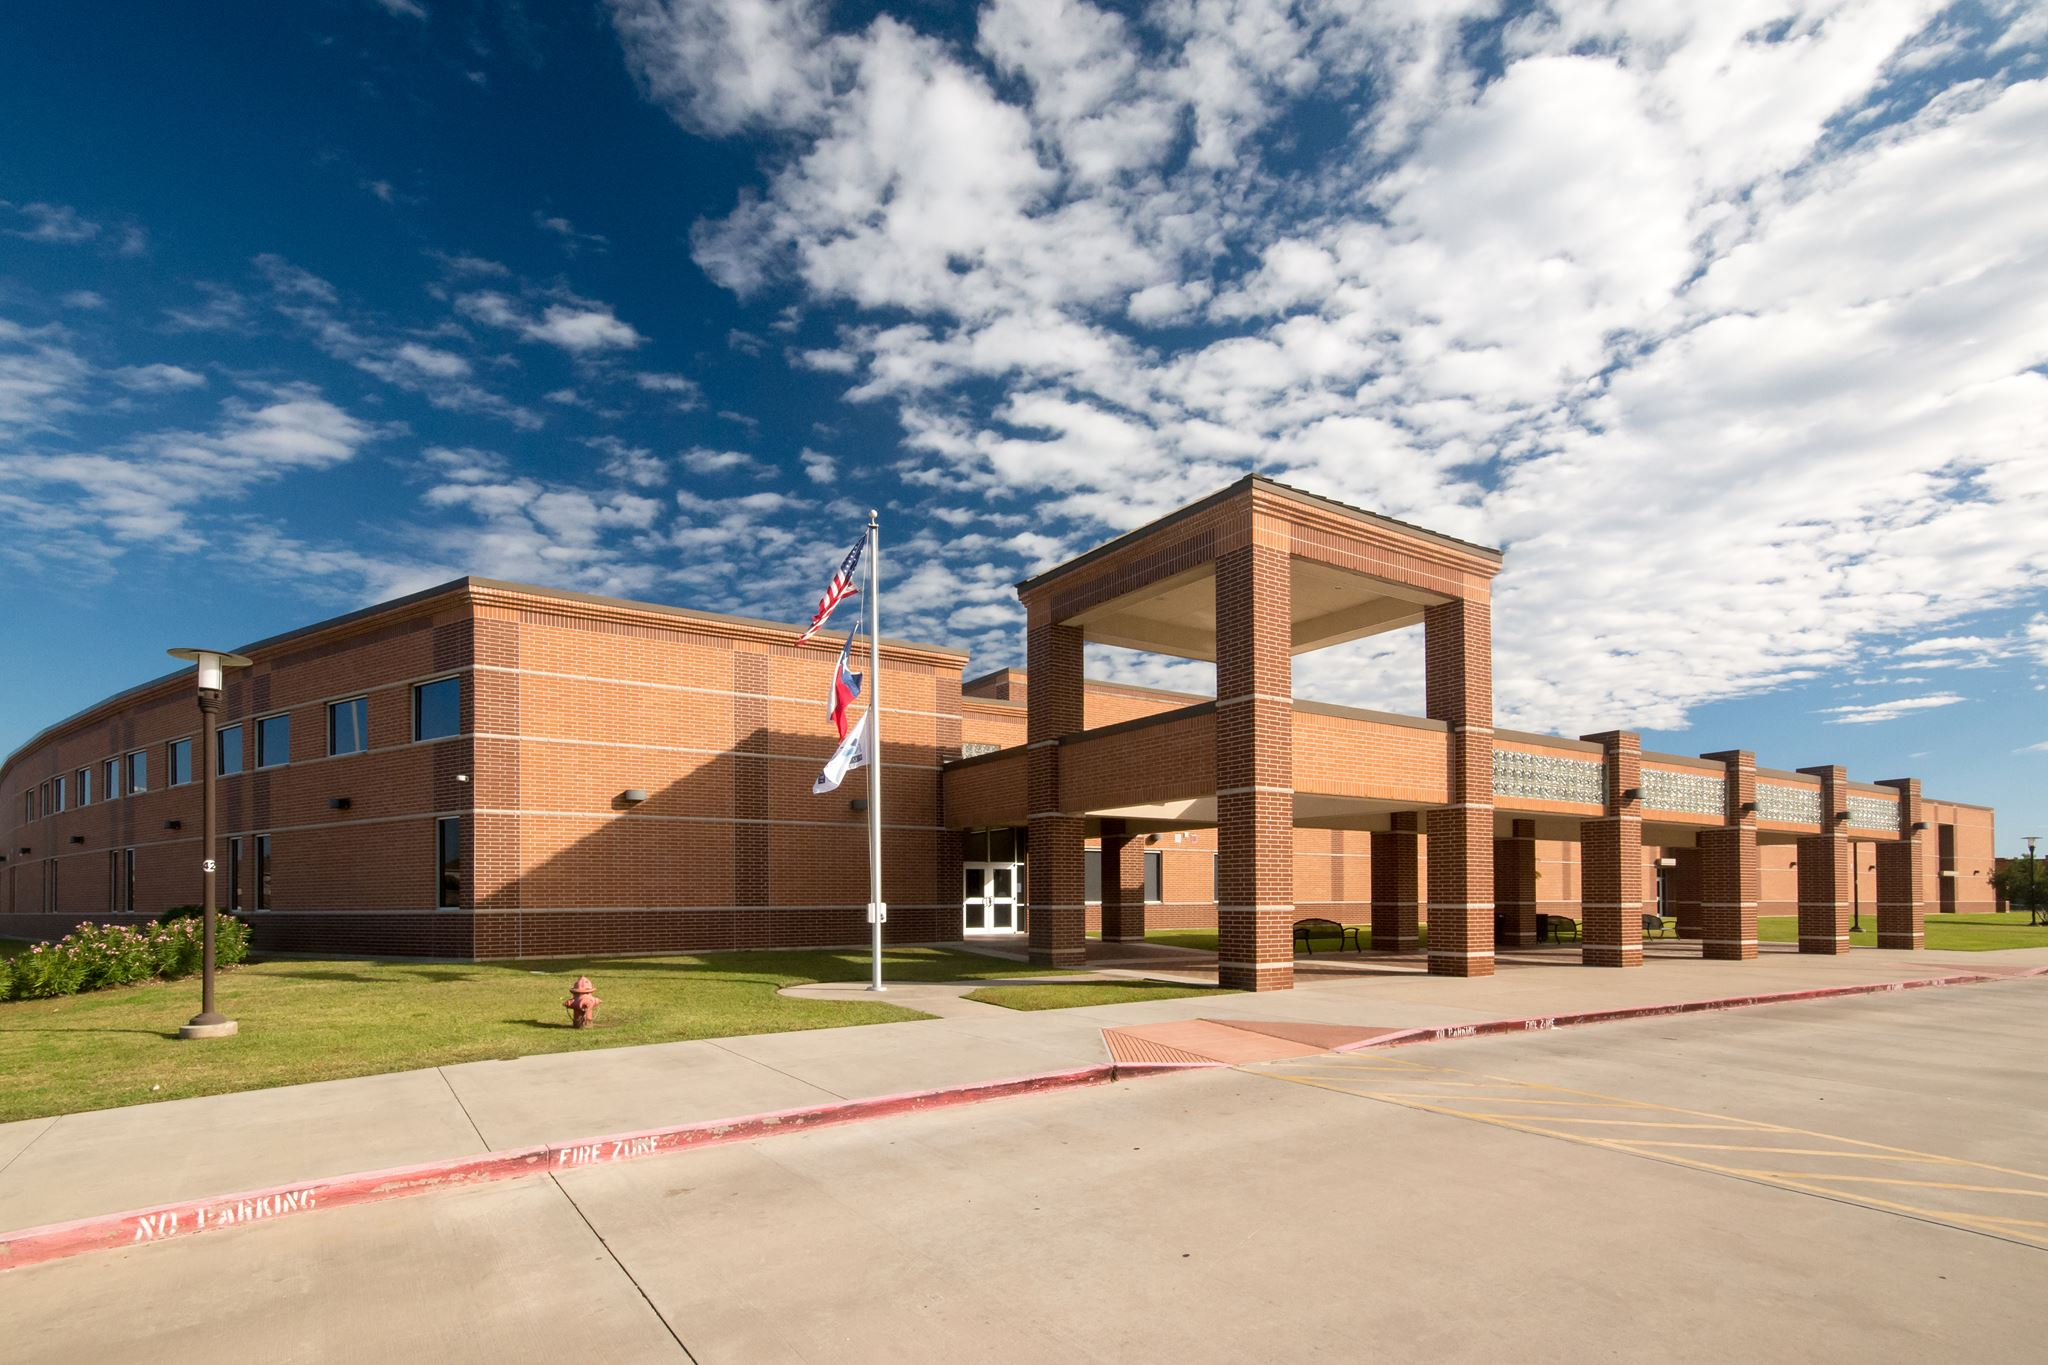 Top 5 Highest Rated Best Middle Schools in Klein Independent